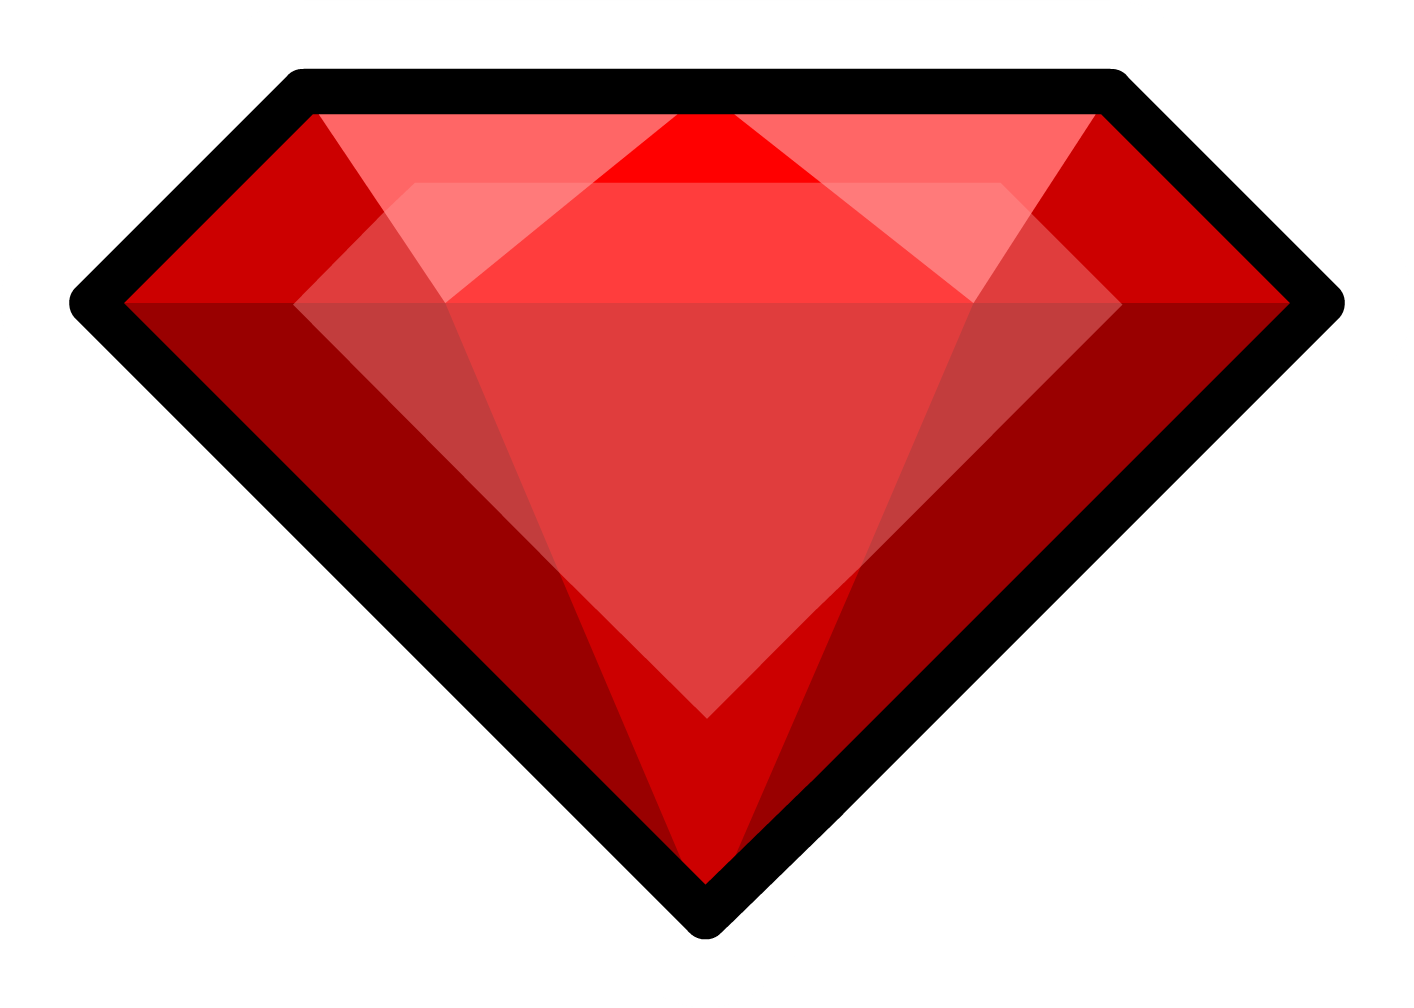 Image pin png club. Gem clipart red gem